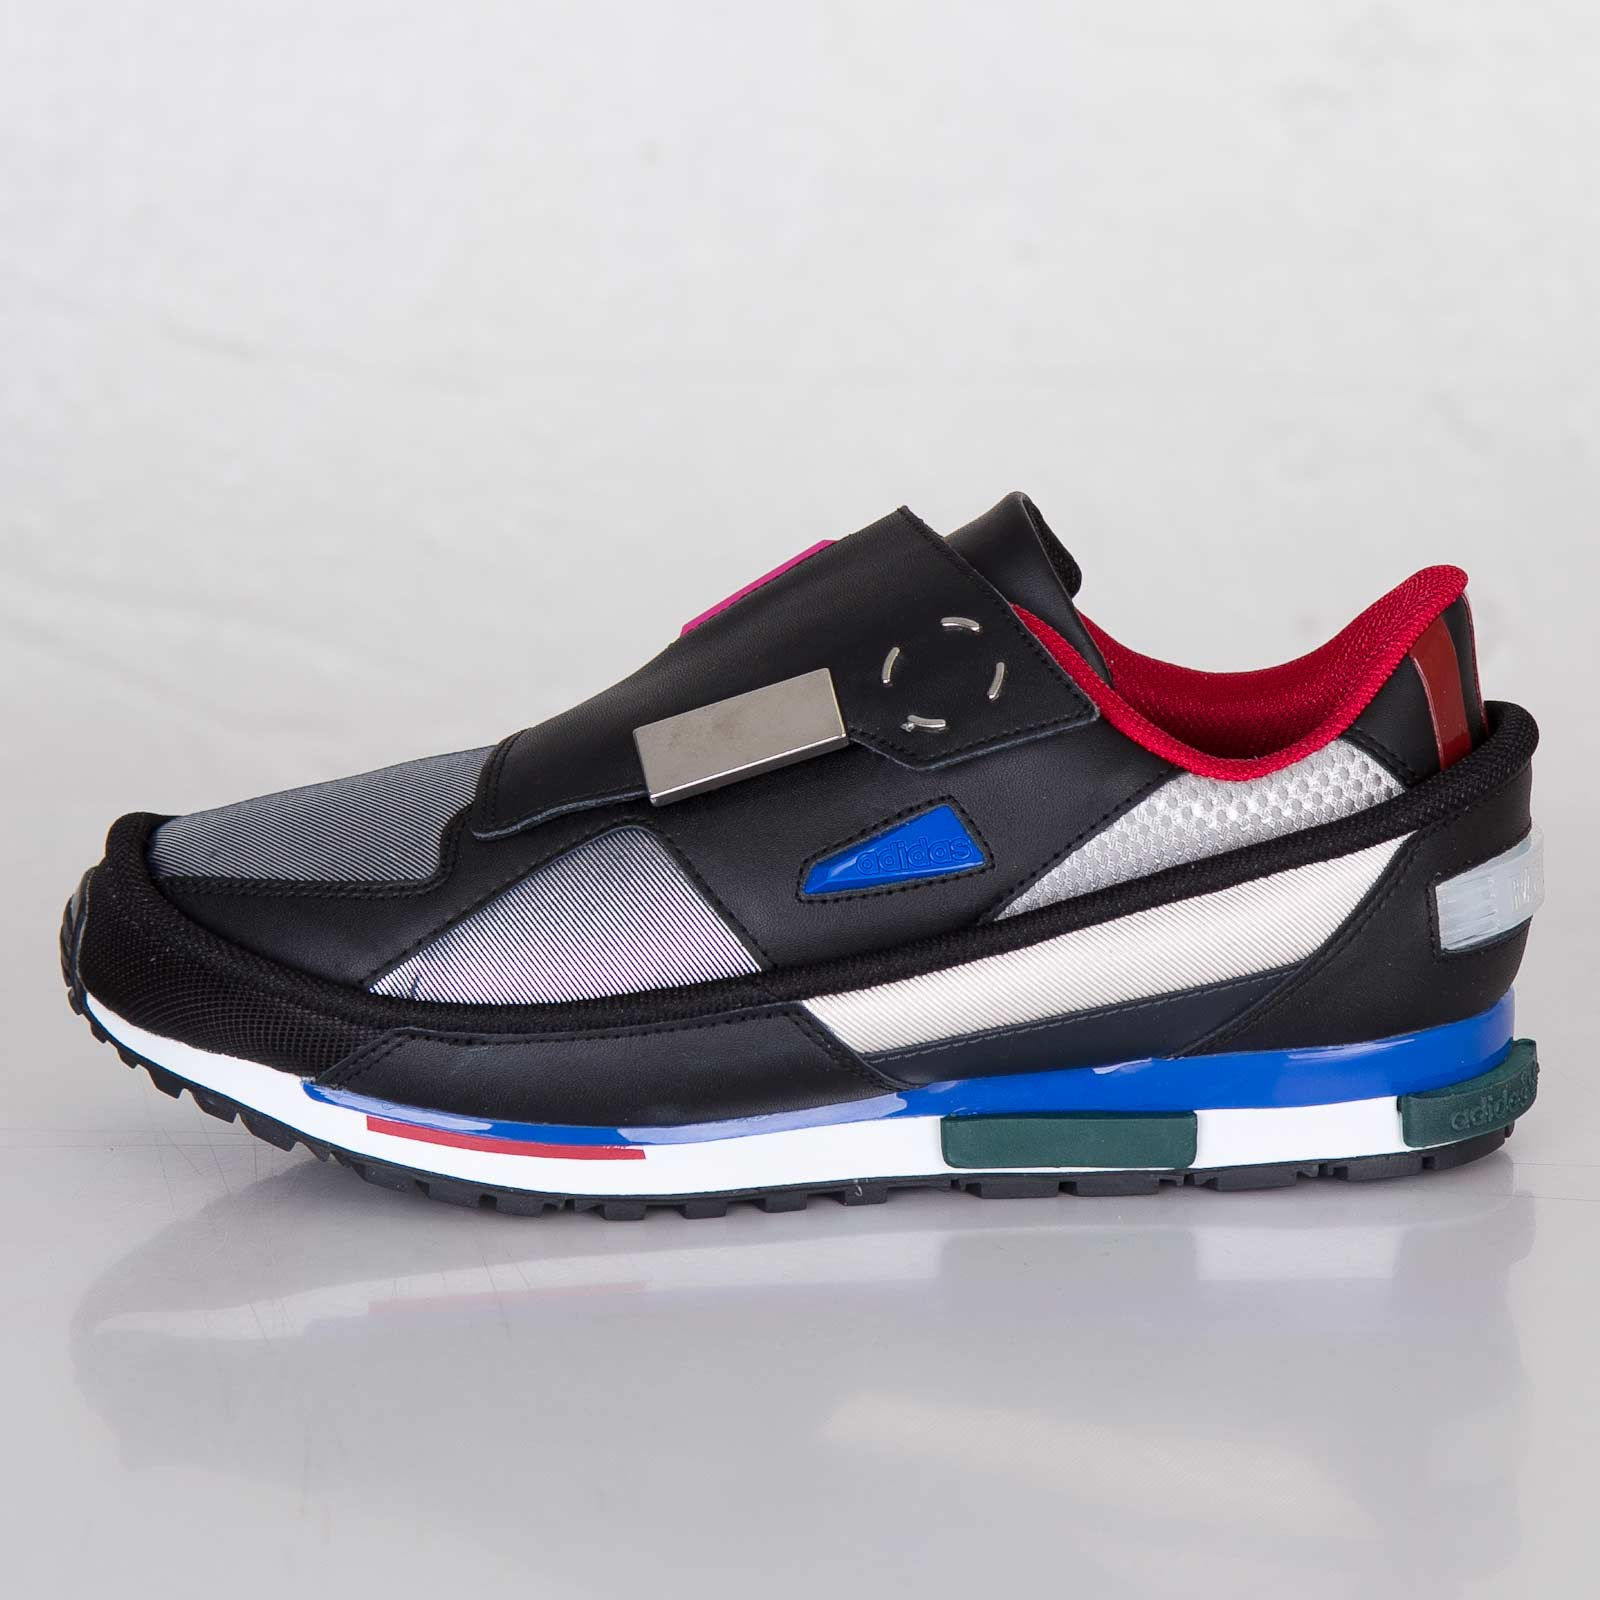 purchase cheap dd5c1 5f9eb adidas Raf Simons Rising Star 2 - M20553 - Sneakersnstuff ...